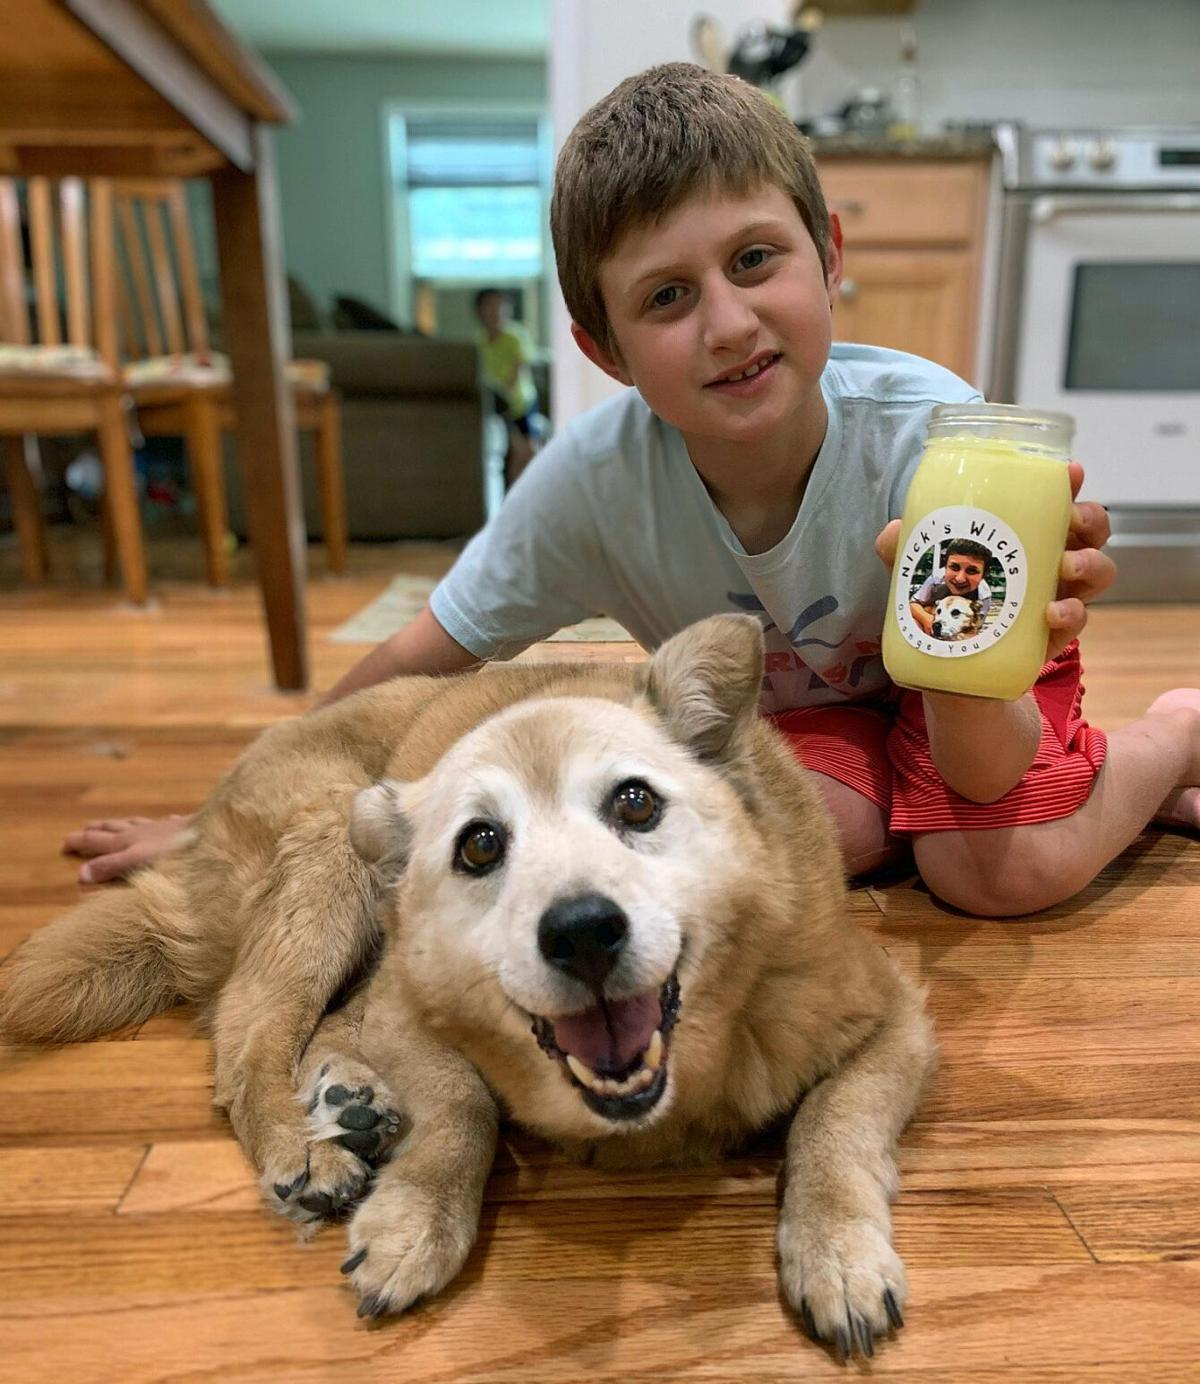 Guilford 9-year-old starts Nick's Wicks candles during COVID